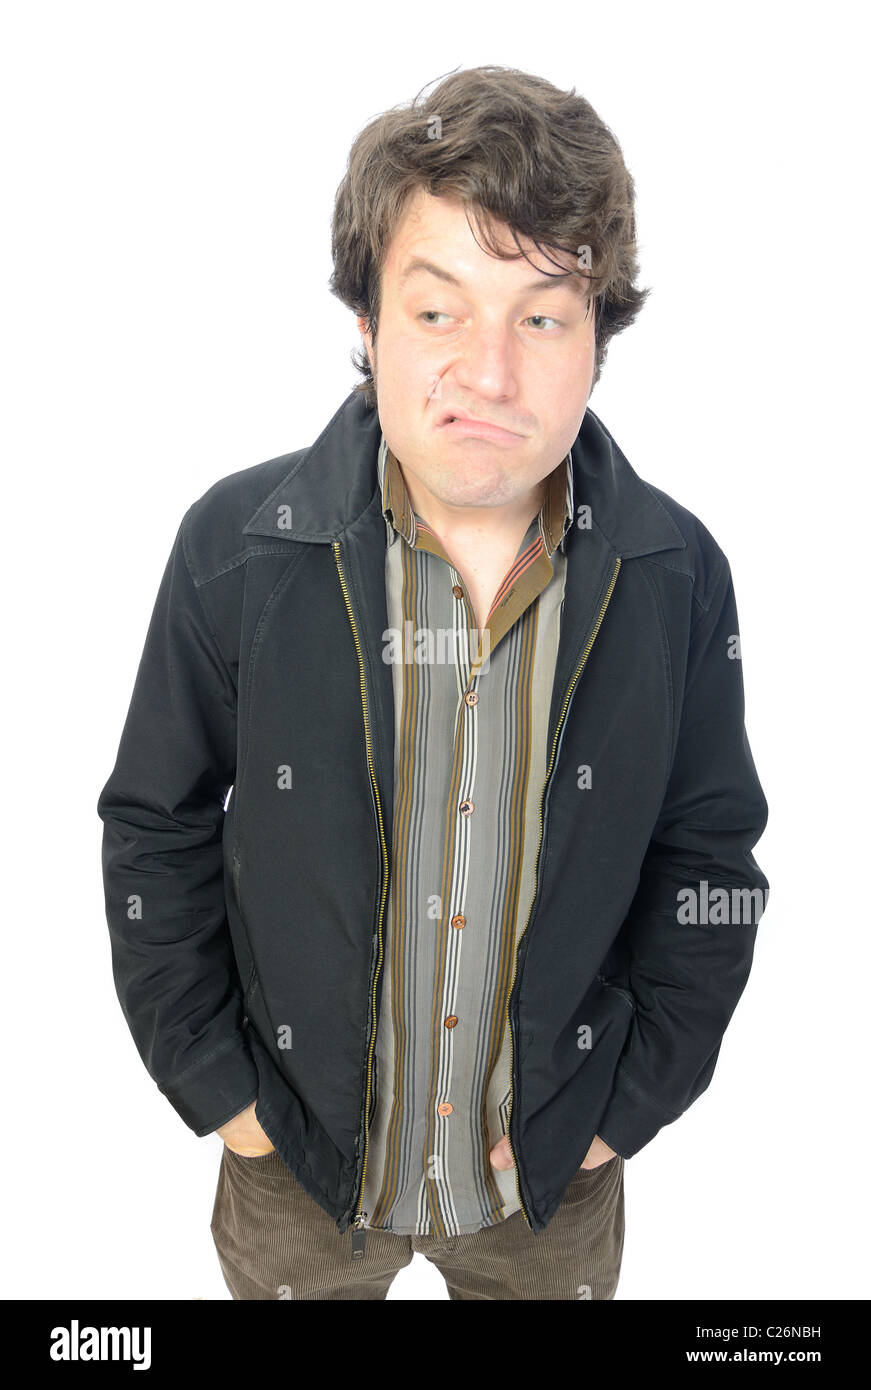 Man making an odd disgruntled face expression. - Stock Image